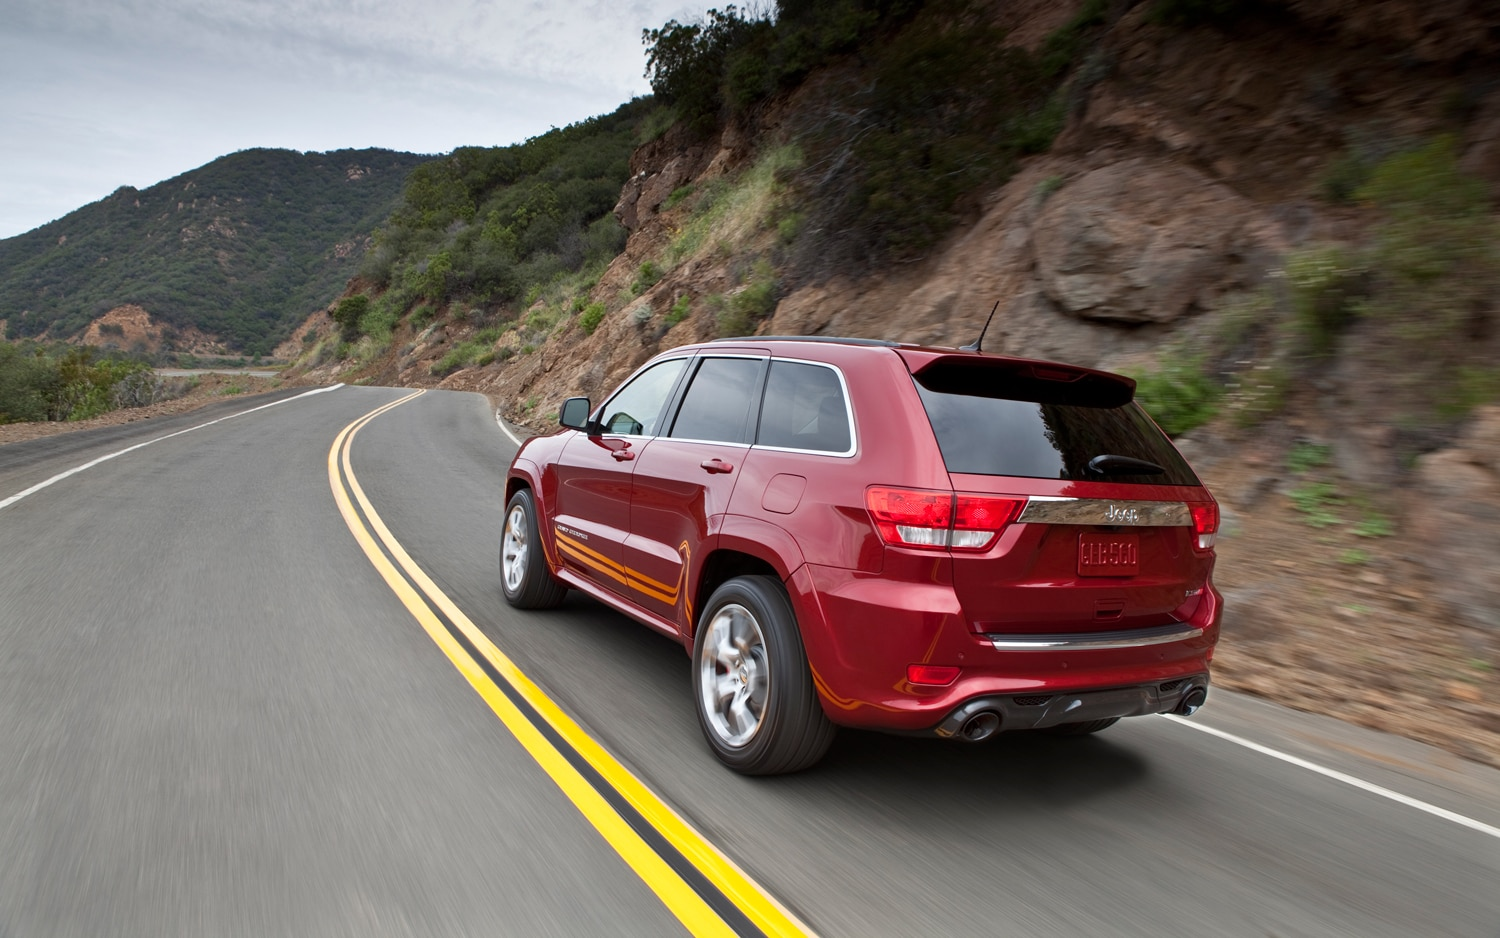 2012 jeep grand cherokee srt8 - first look - automobile magazine